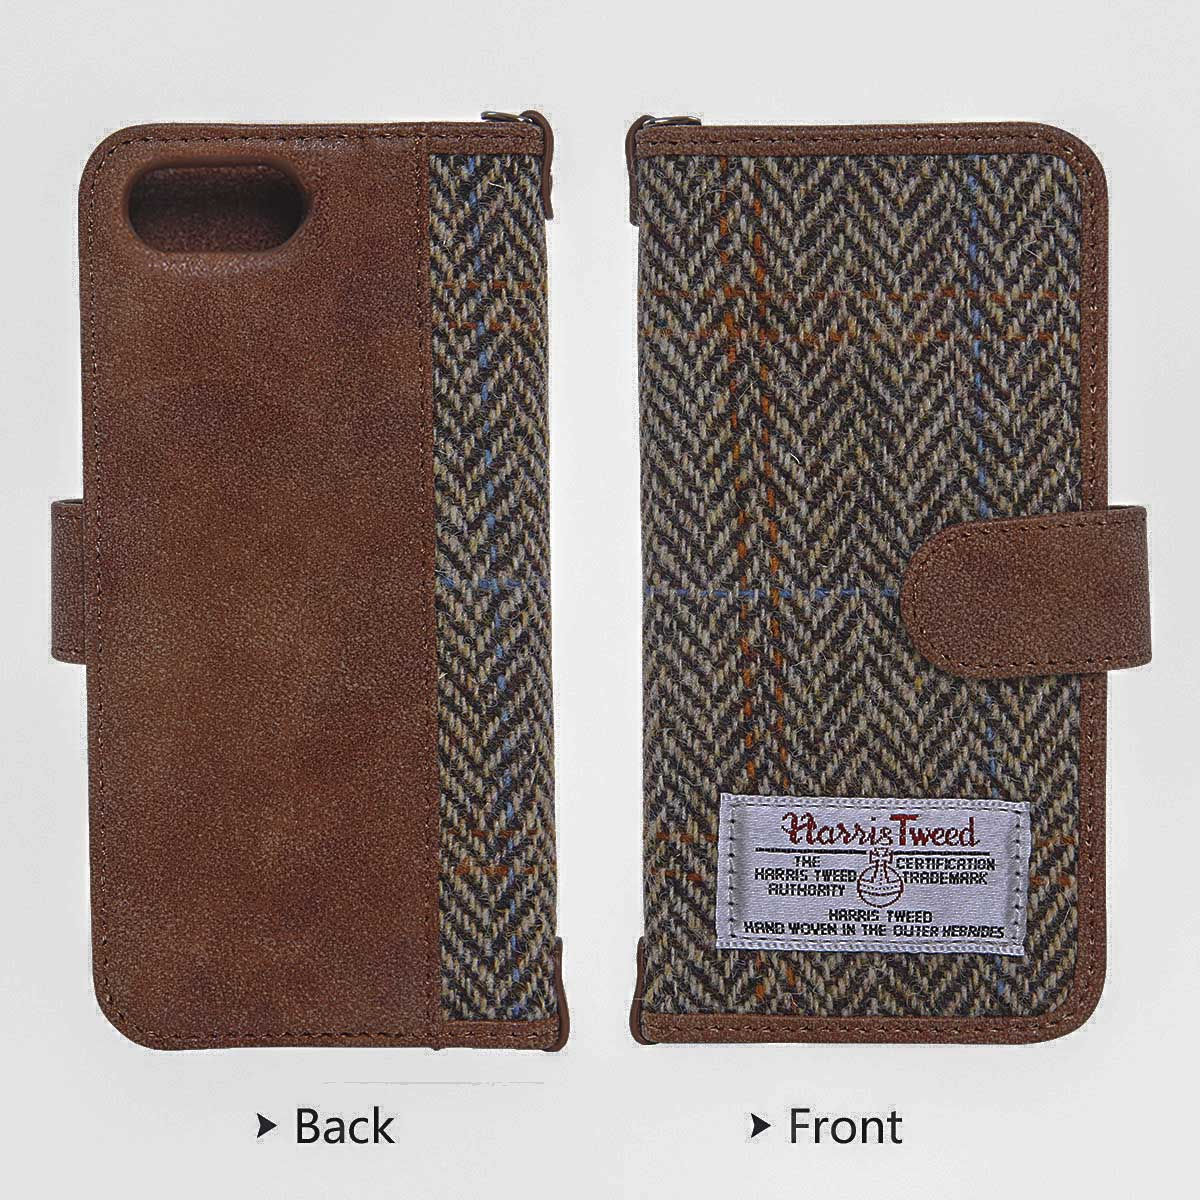 Harris Tweed iPhone 7 Case, Hard PC+ Premium Cotton Material Wallet Phone Case